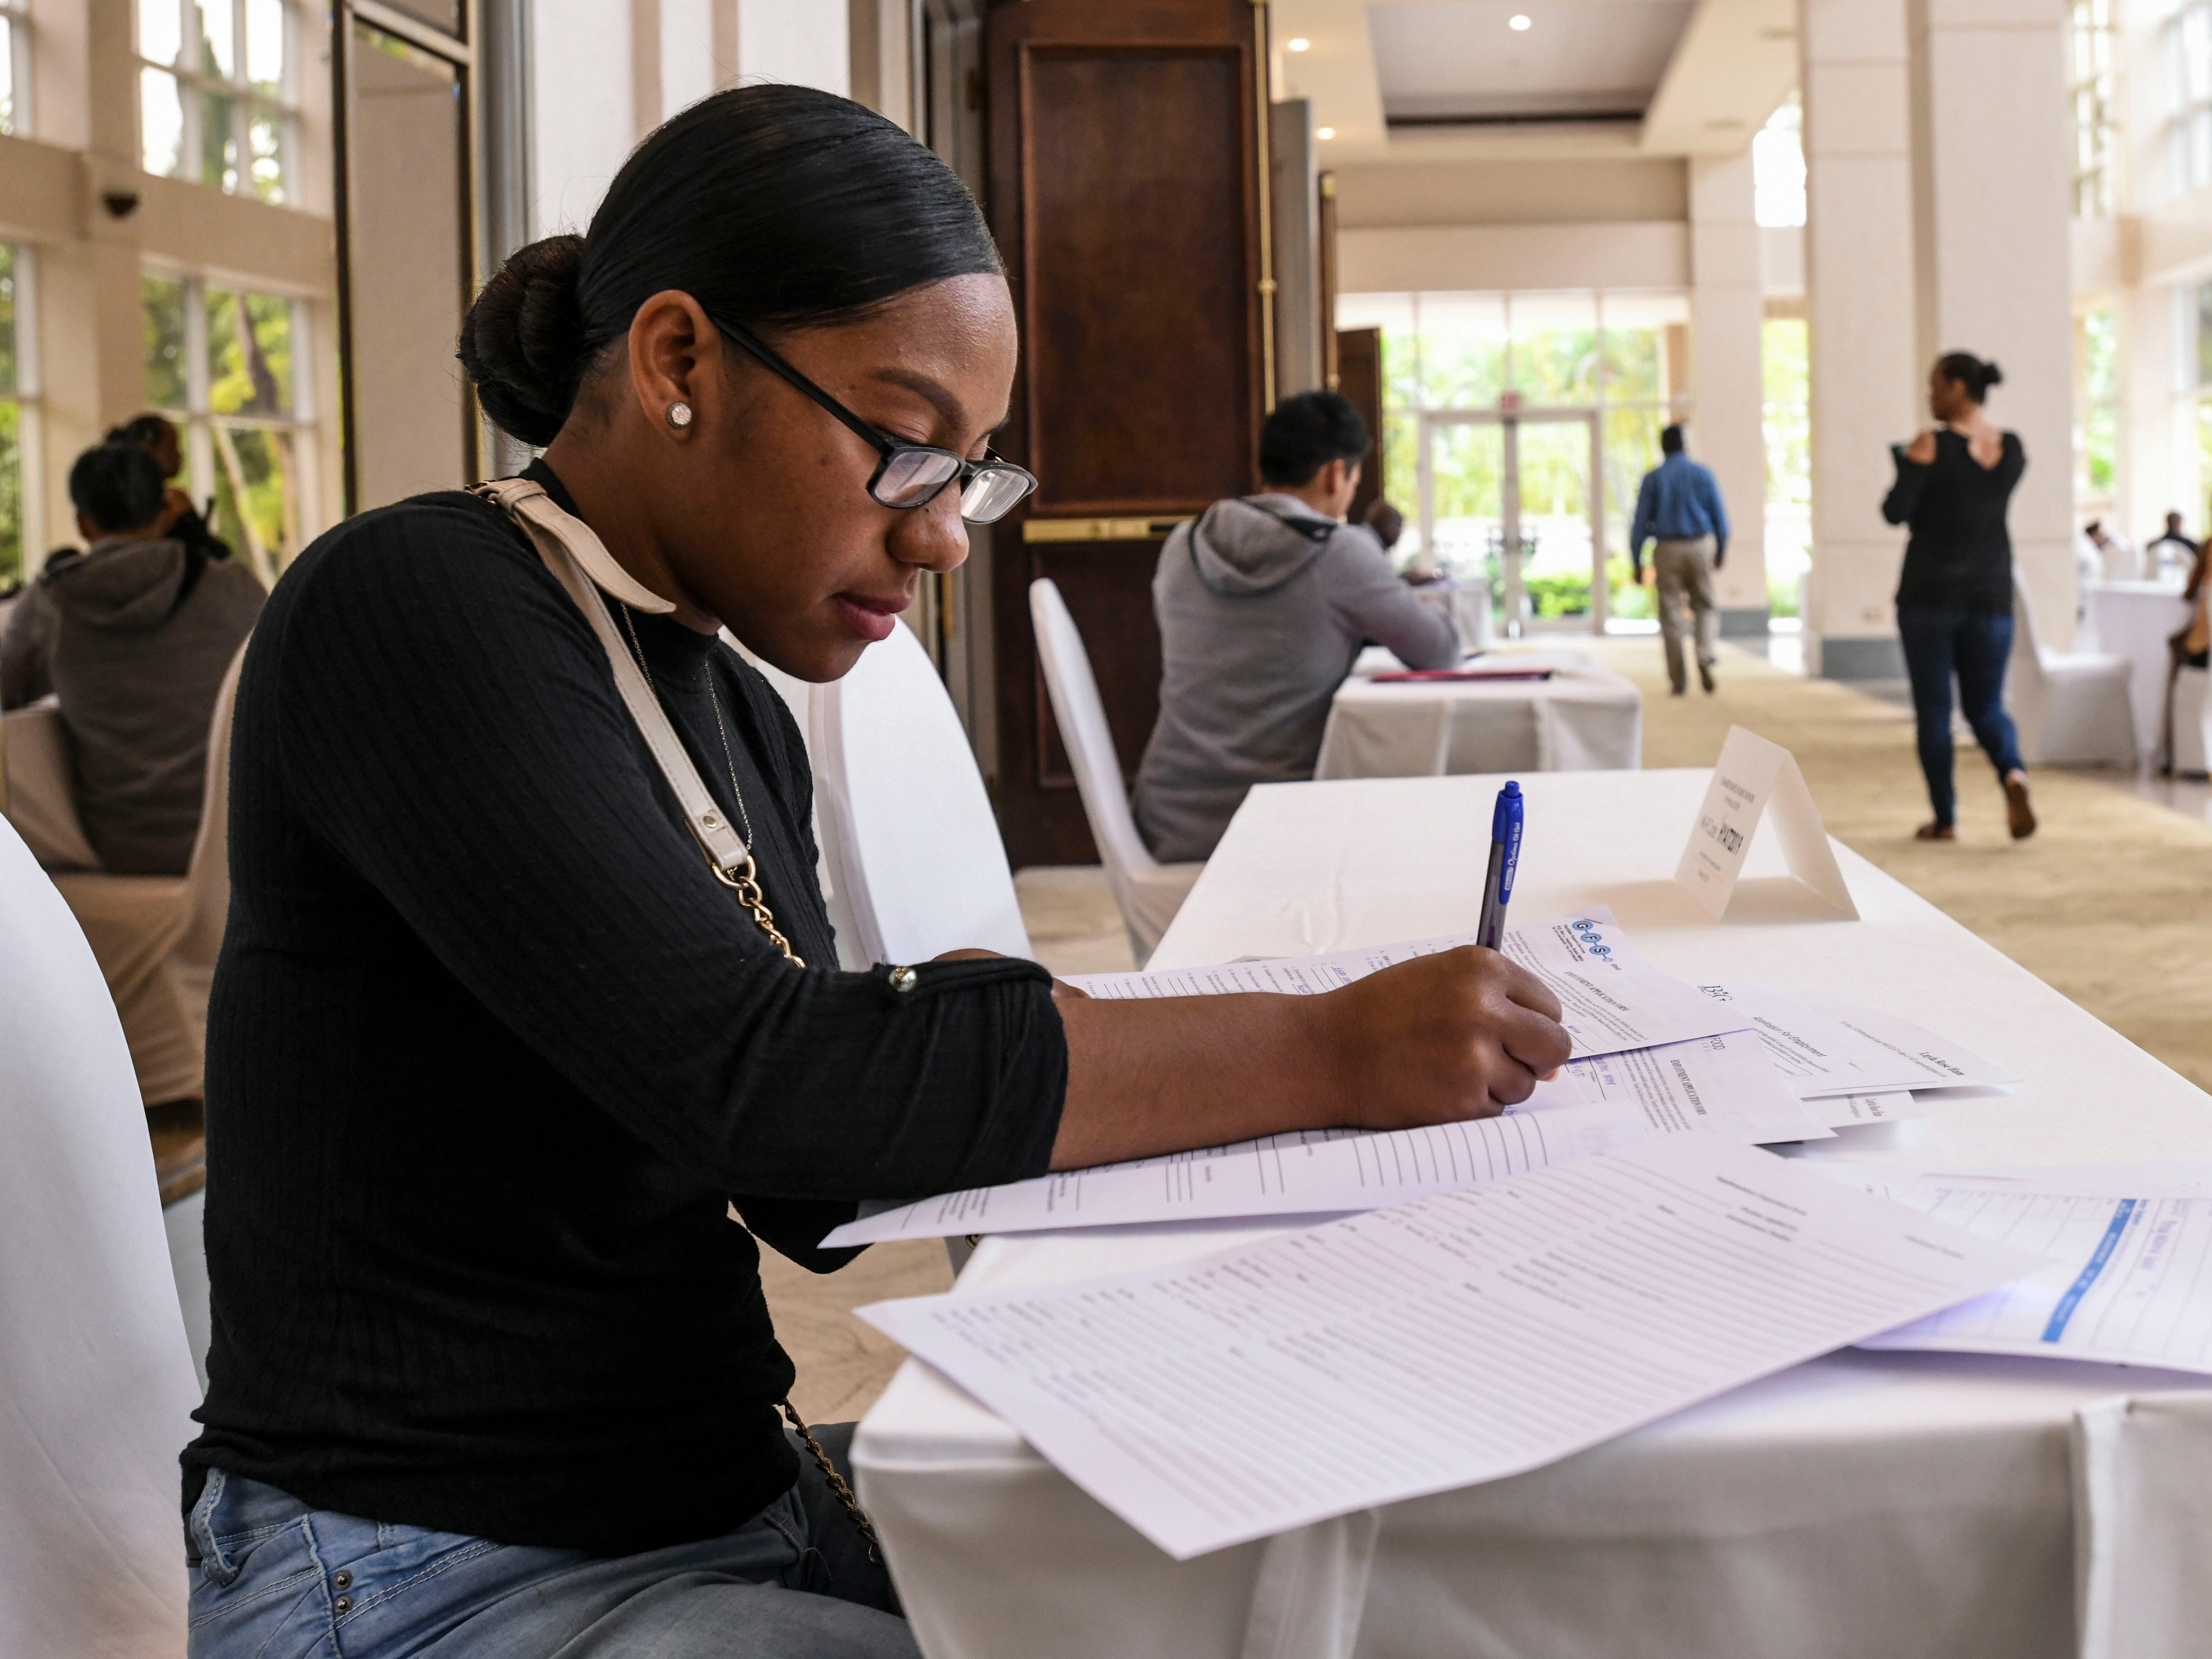 """Job seeker Layla Ham takes the time to fill out employment application, along with other applicants, during the Guam Chamber of Commerce's Women's Network 4th annual """"Propel Yourself"""" job fair at the Hyatt Regency Guam in Tumon on Friday, Feb. 8, 2019."""